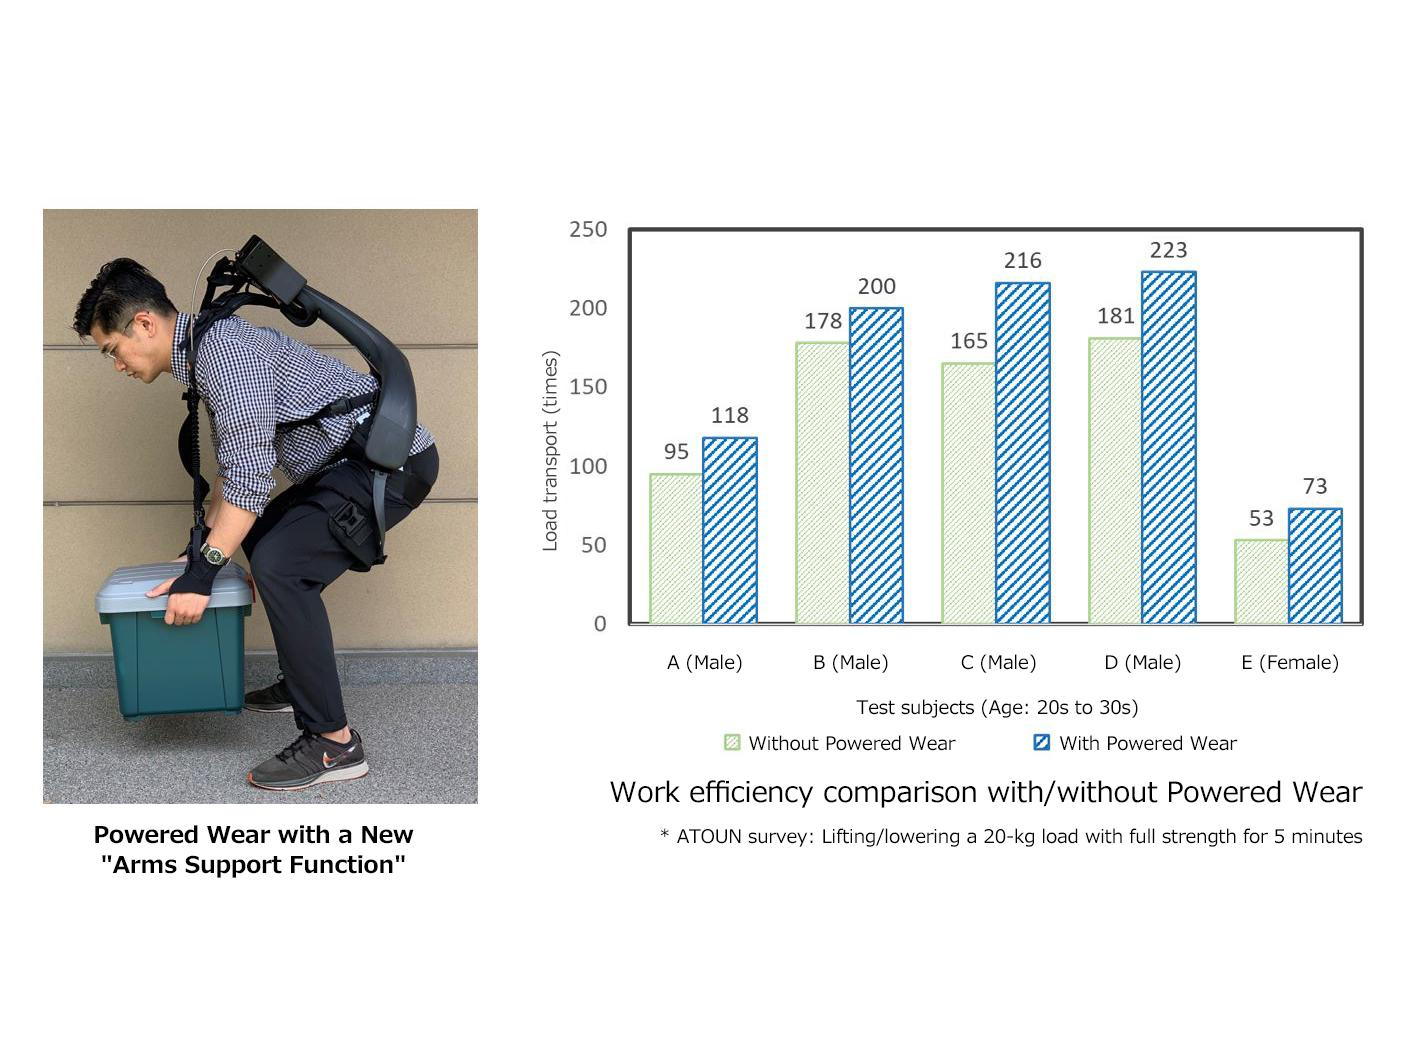 image: Efficiency comparison with/without Powered Wear equipped with arms support function